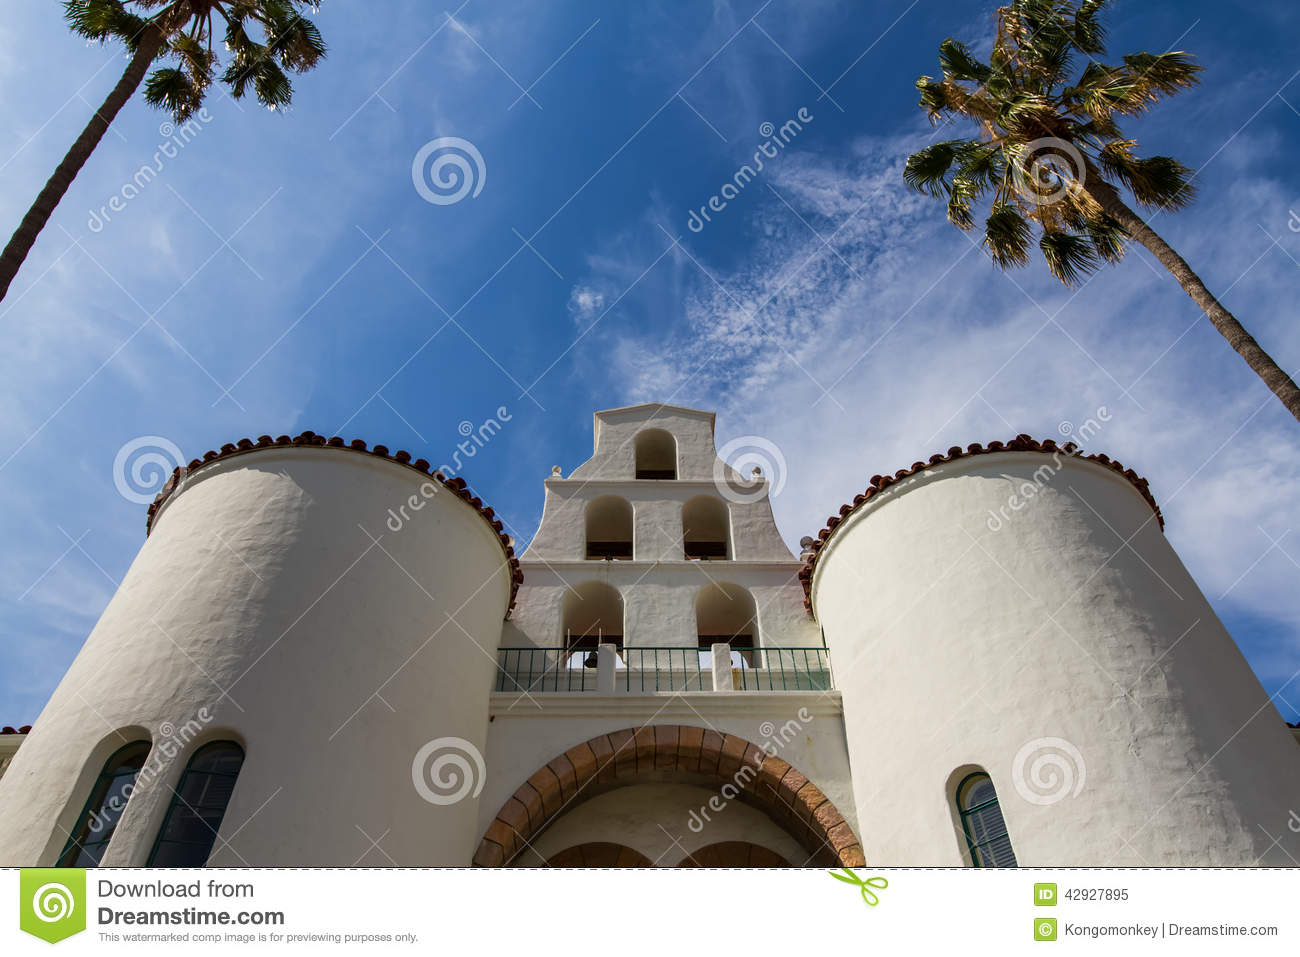 California mission style architecture - Royalty Free Stock Photo